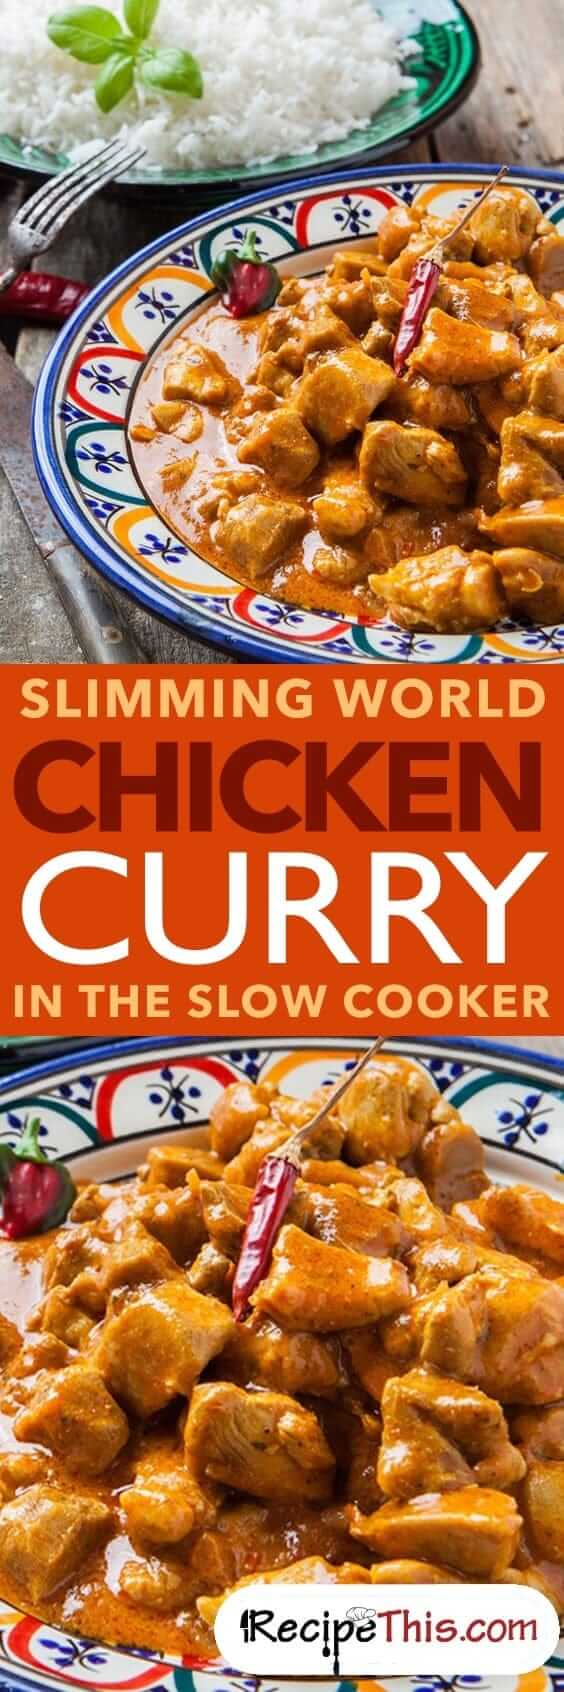 Slimming World Chicken Curry In The Slow Cooker Recipe This